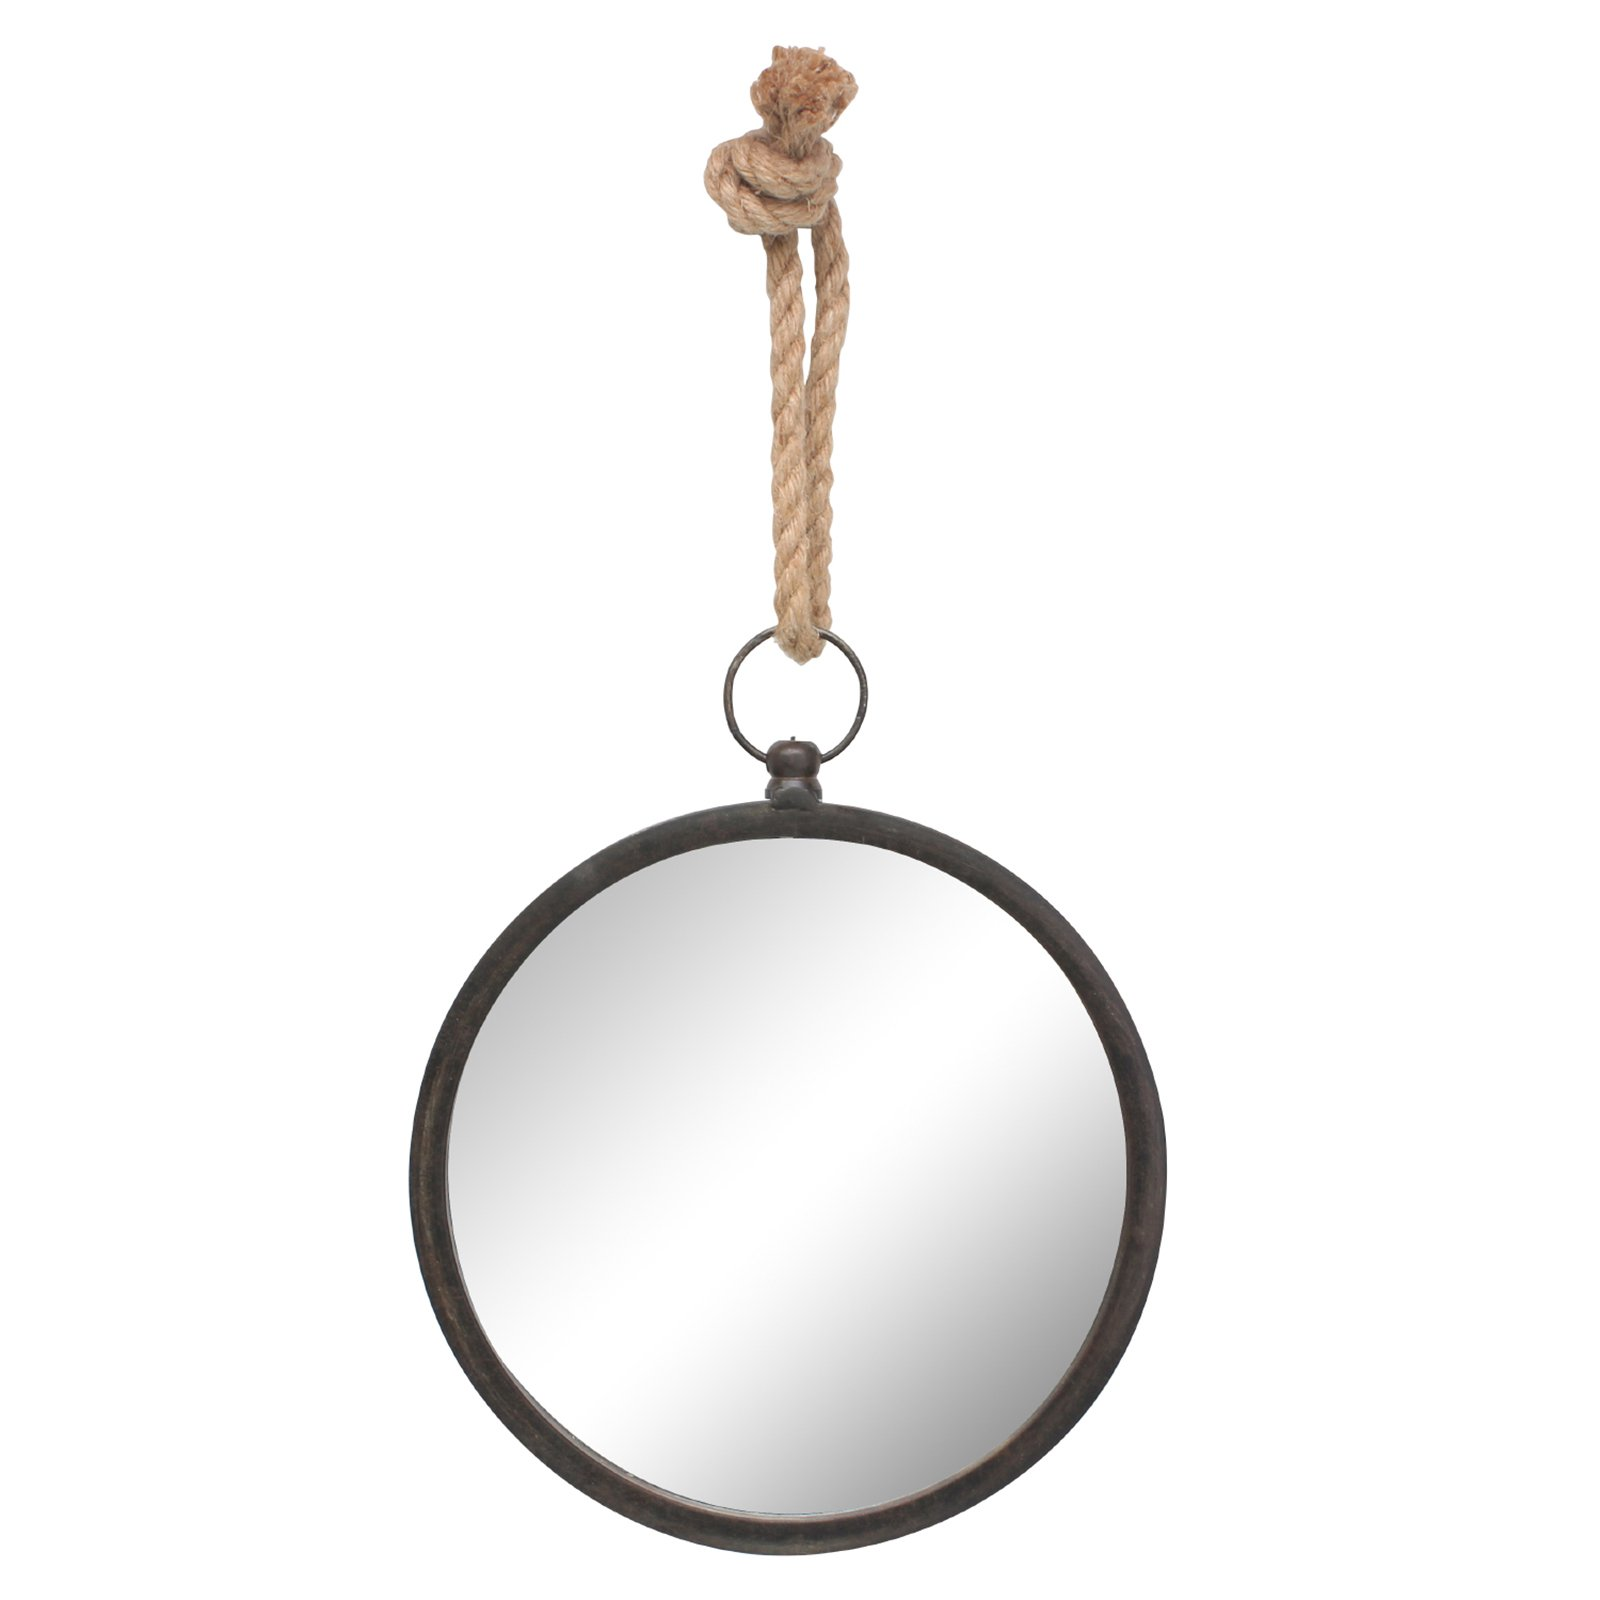 Stonebriar Collection Small Round Nautical Wall Mirror by CKK HOME DECOR